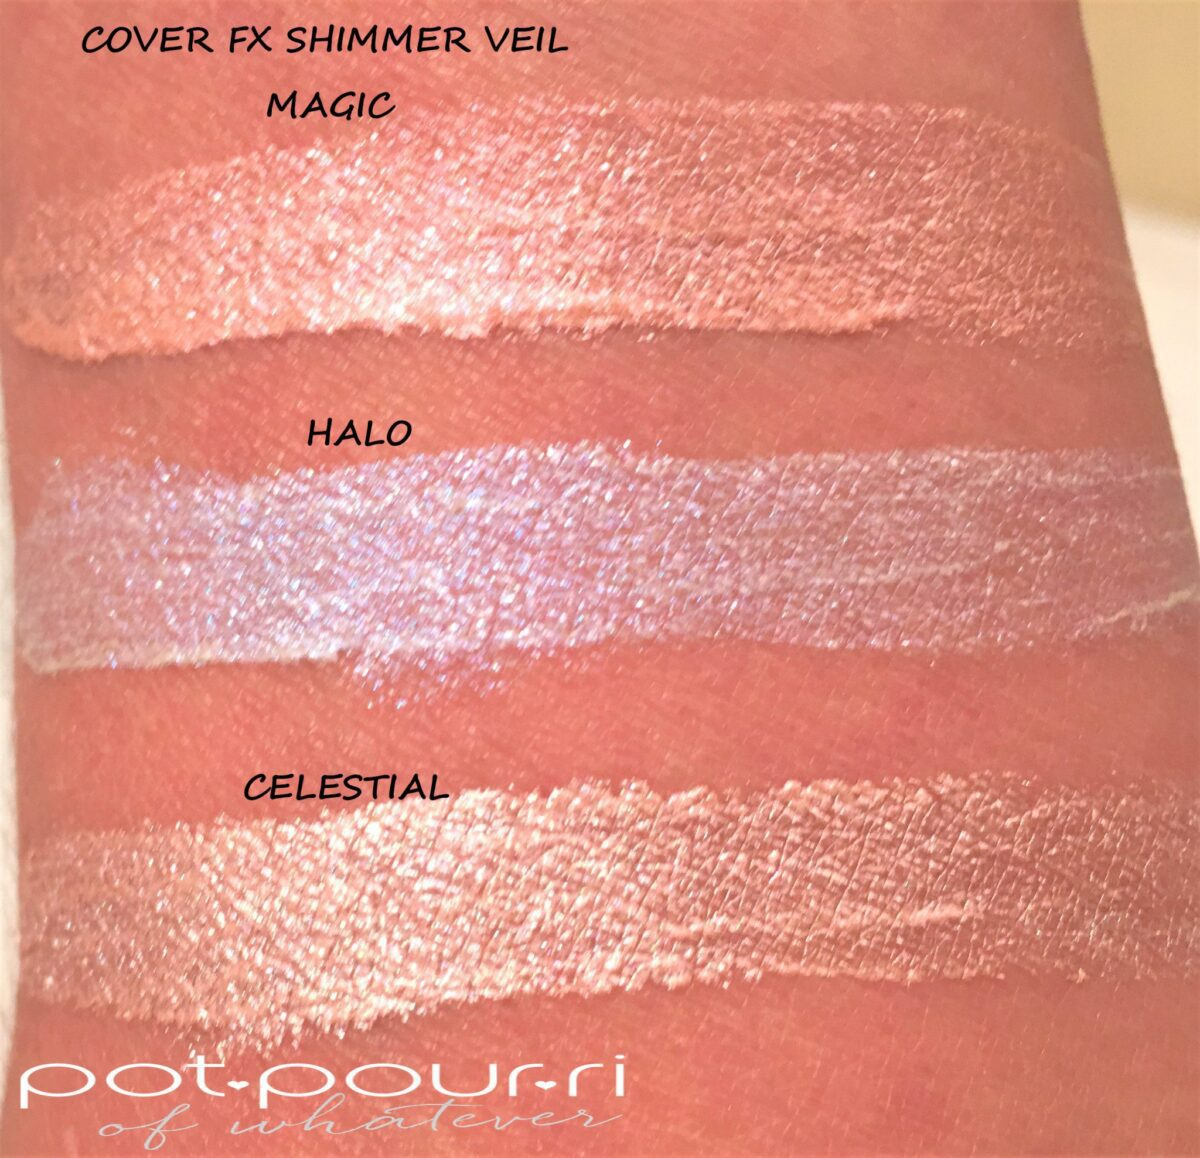 COVER FX SHIMMER VEIL SWATCHES